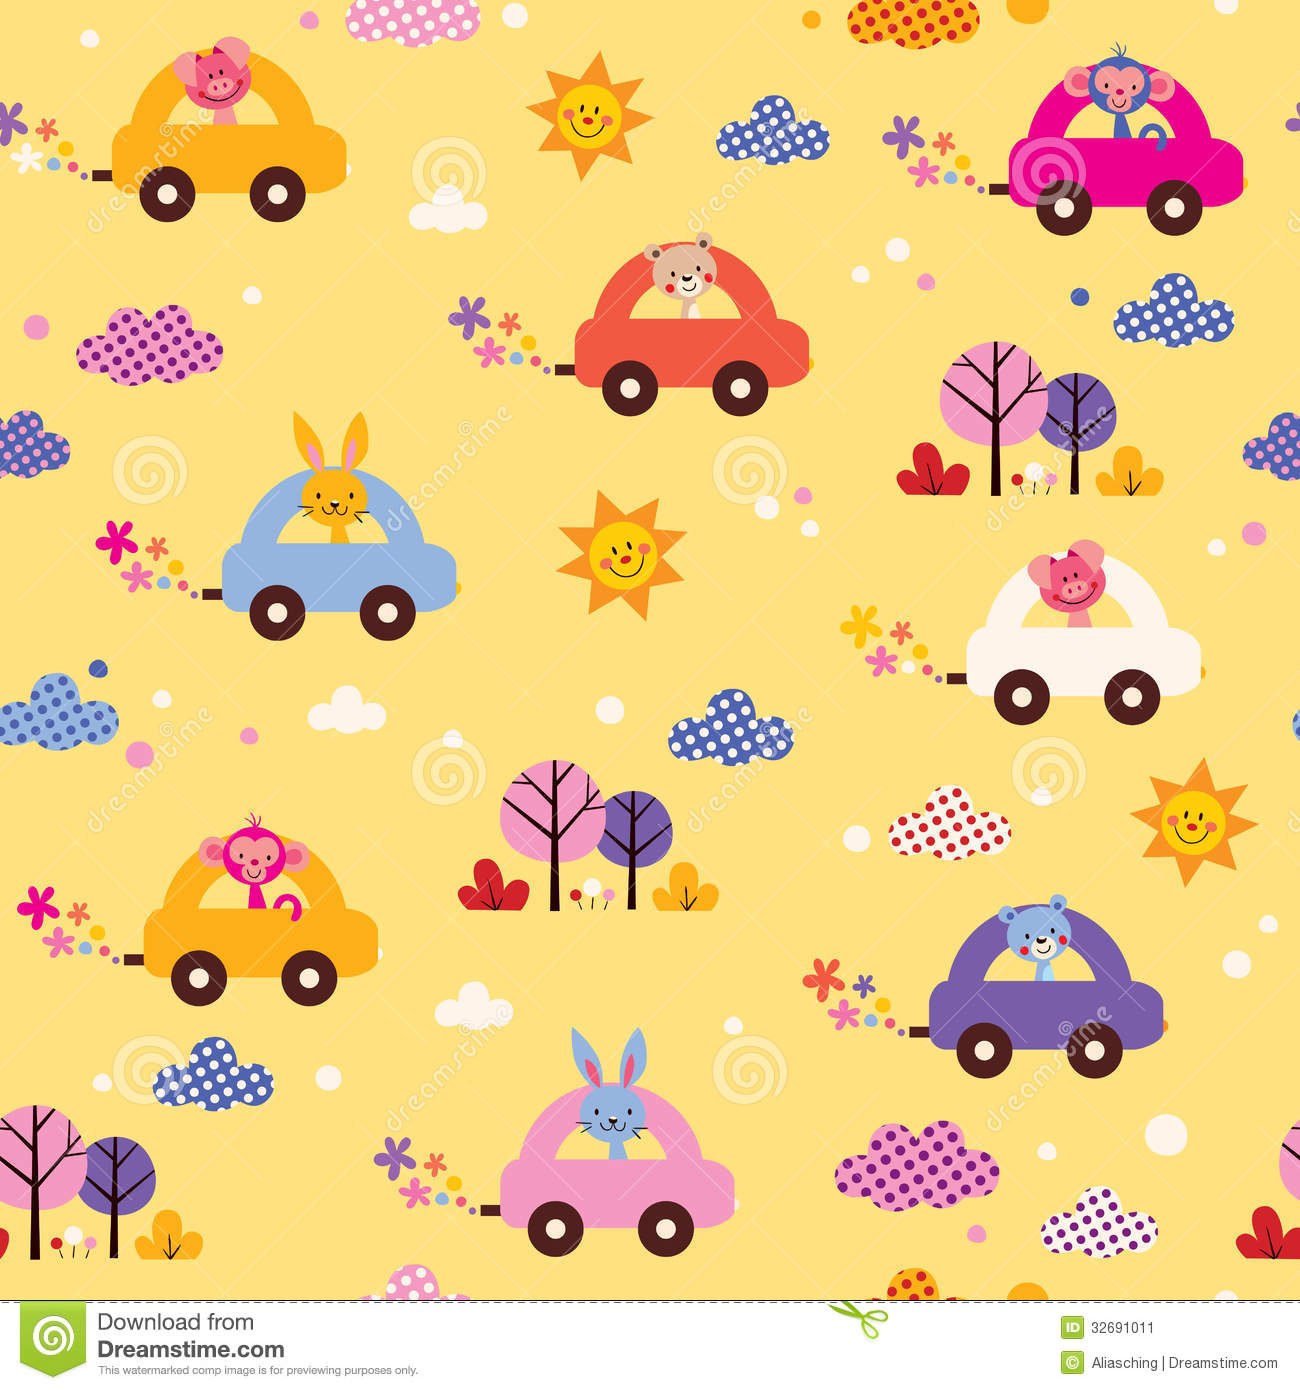 Cute Baby Wallpaper Backgrounds Cute Animals Driving Cars Kids Pattern Stock Image Image